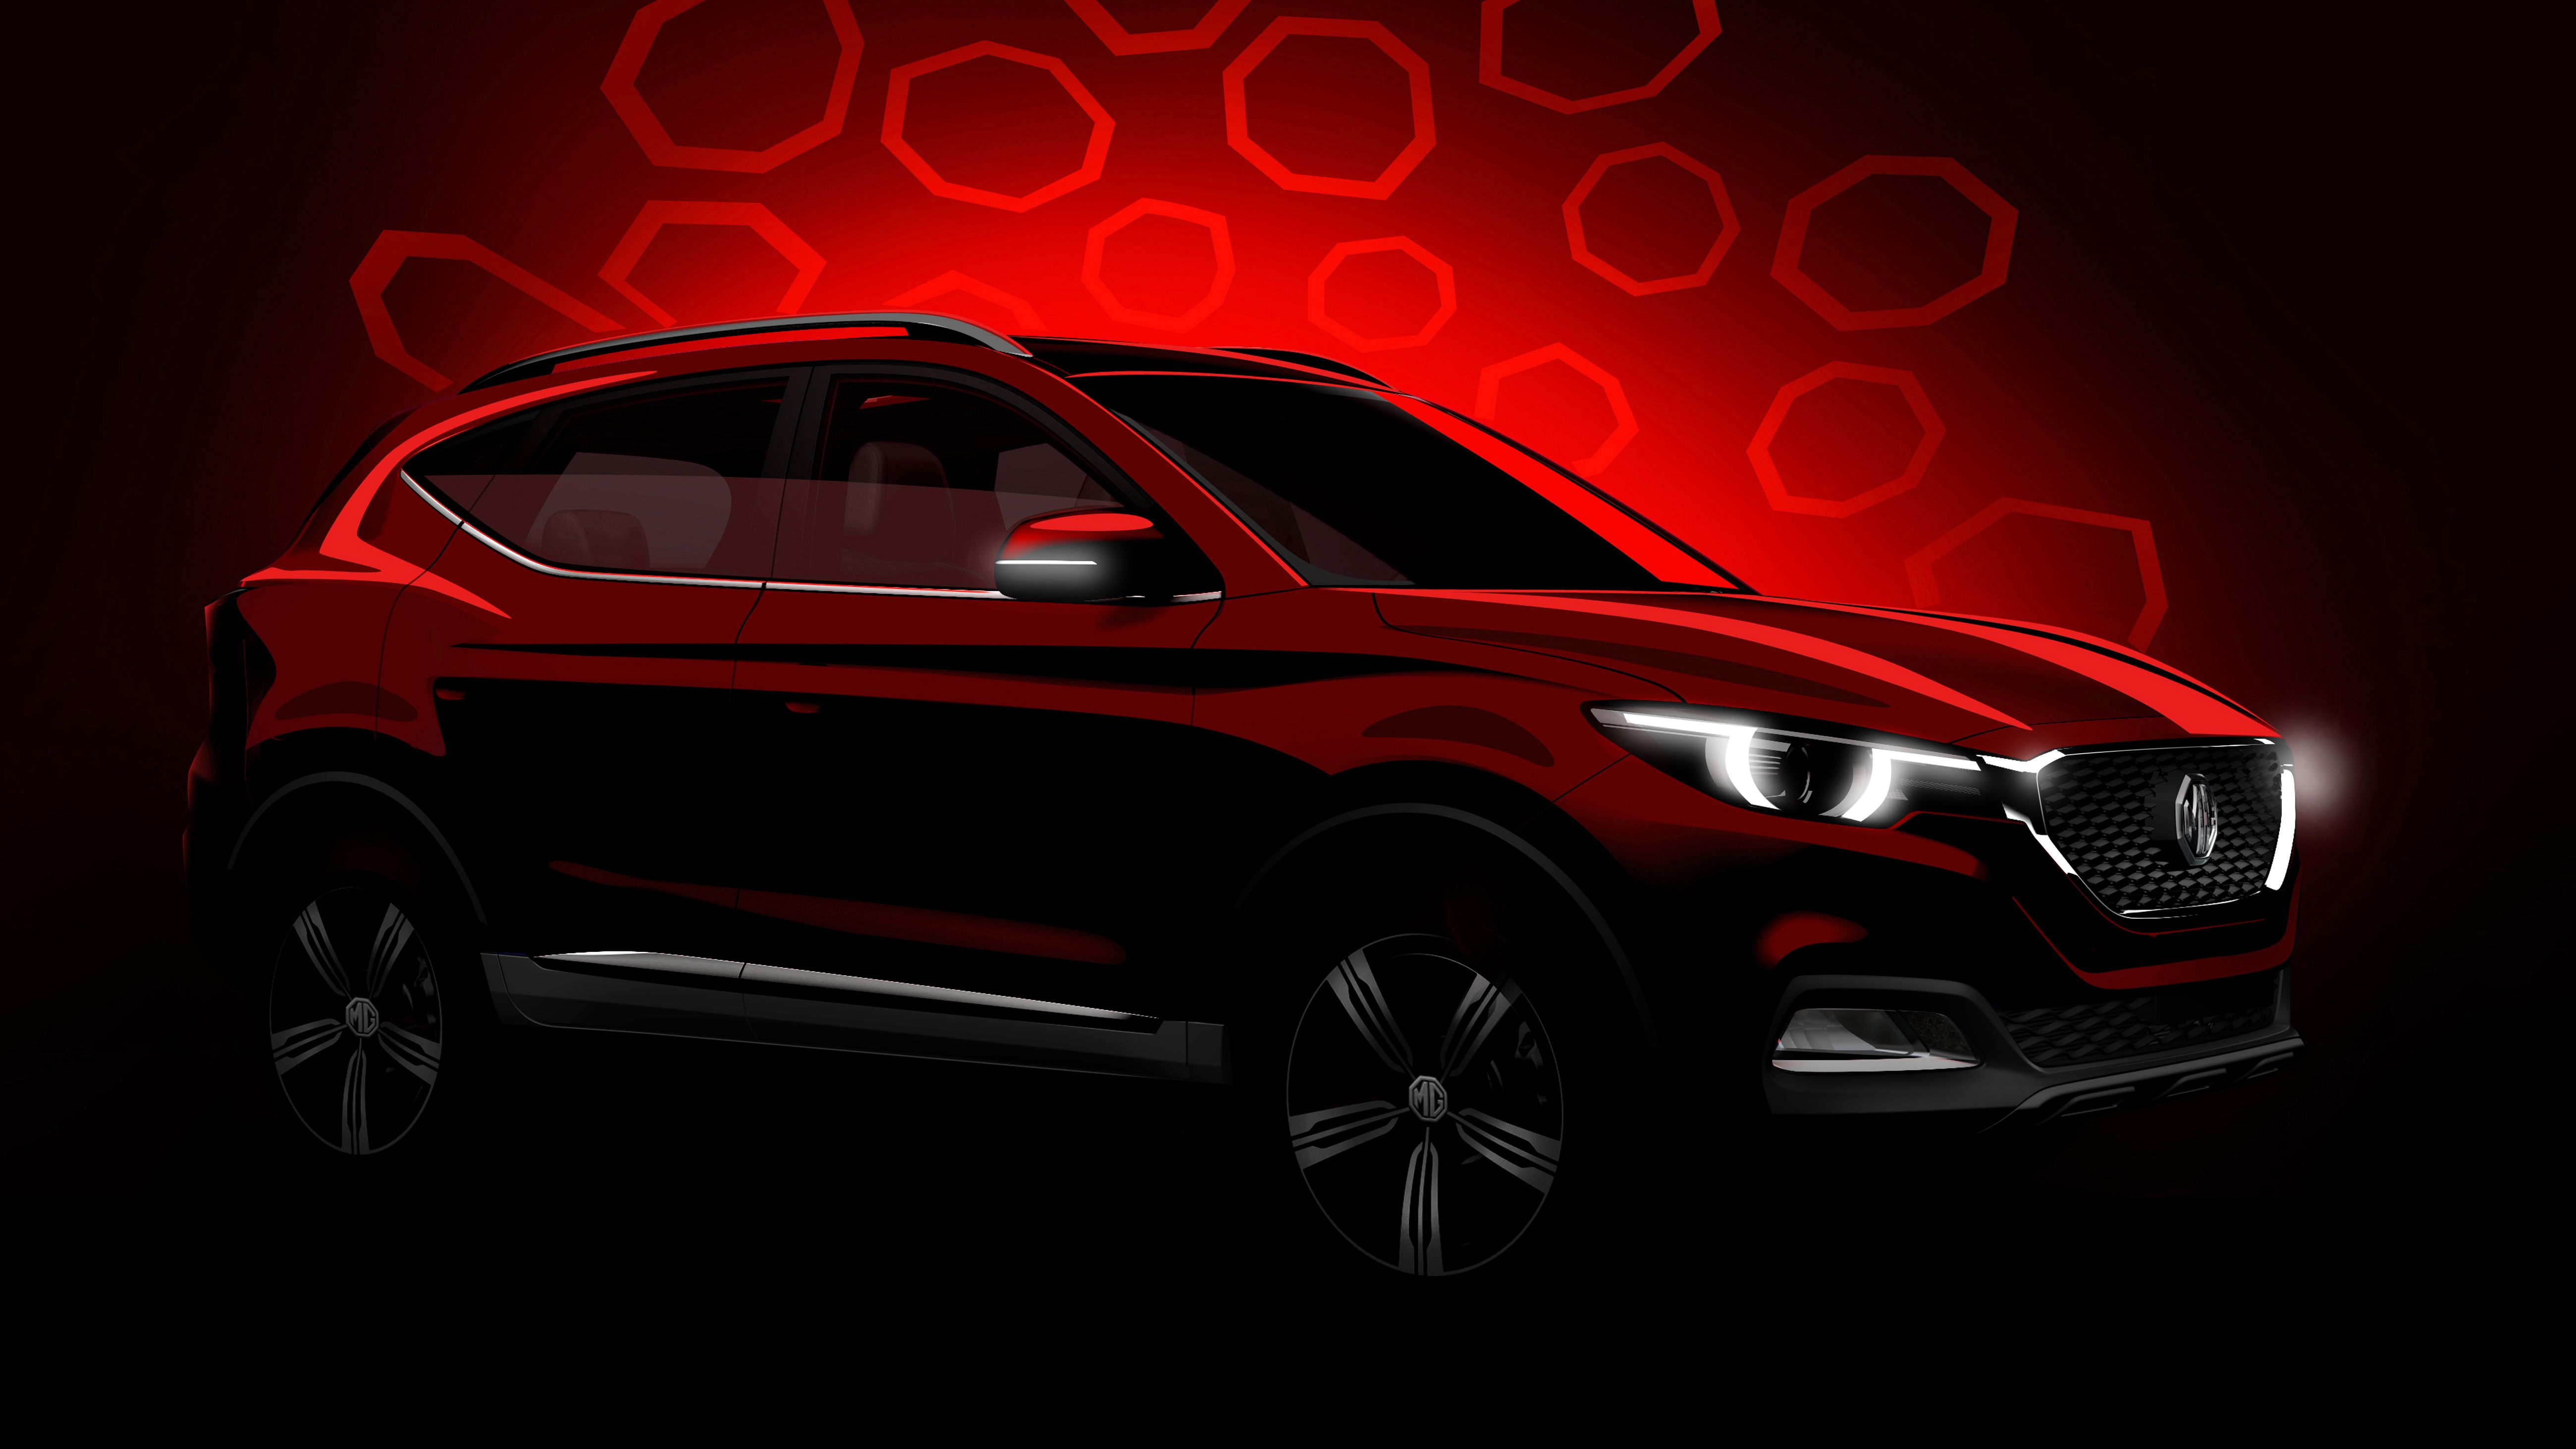 MG Motor could be debut with ZS SUV in India Morris